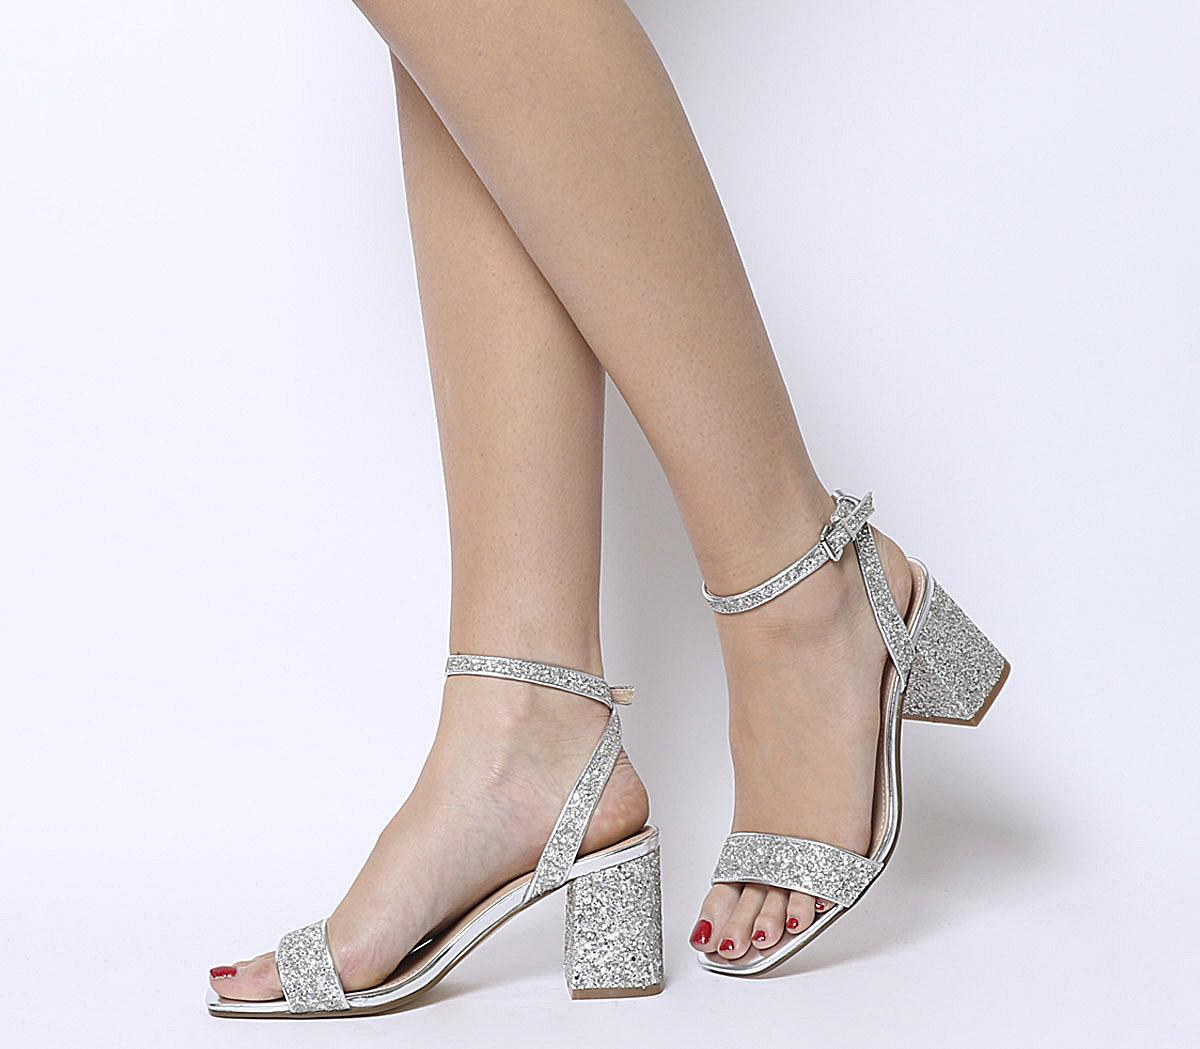 Millions Square Toe Two Part Heels